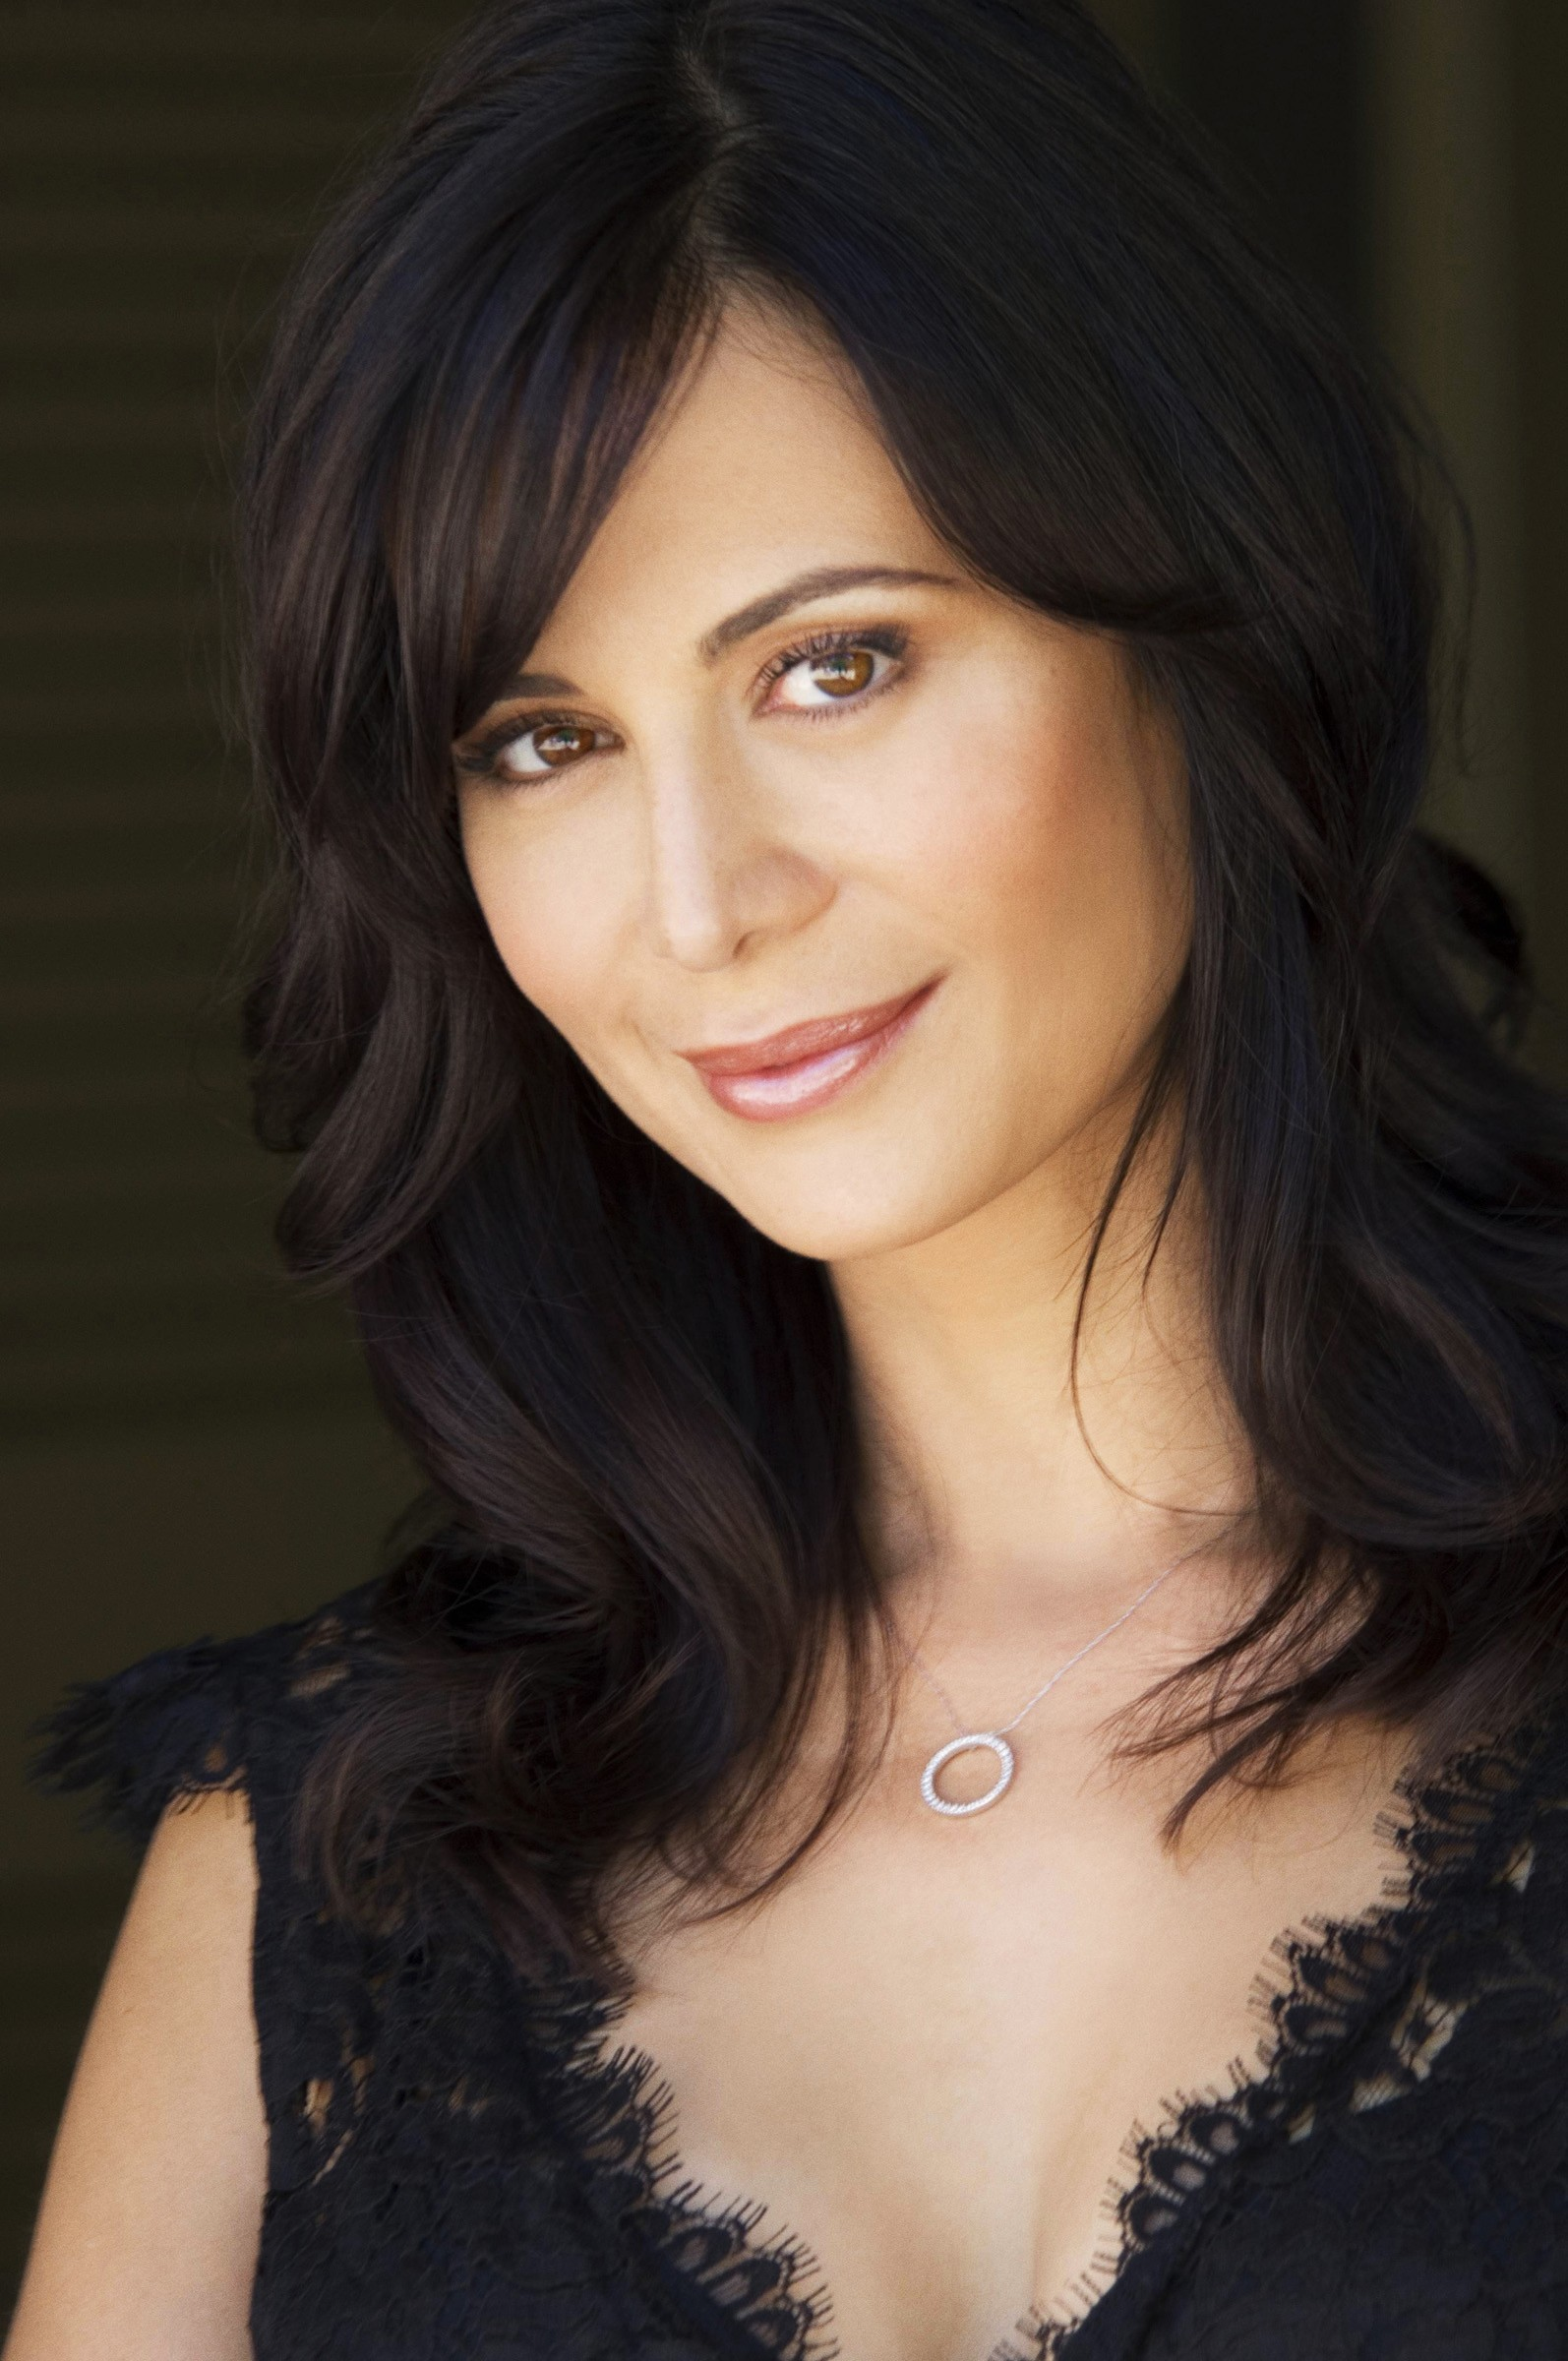 Catherine Catherine Bell Photo 11813883 Fanpop